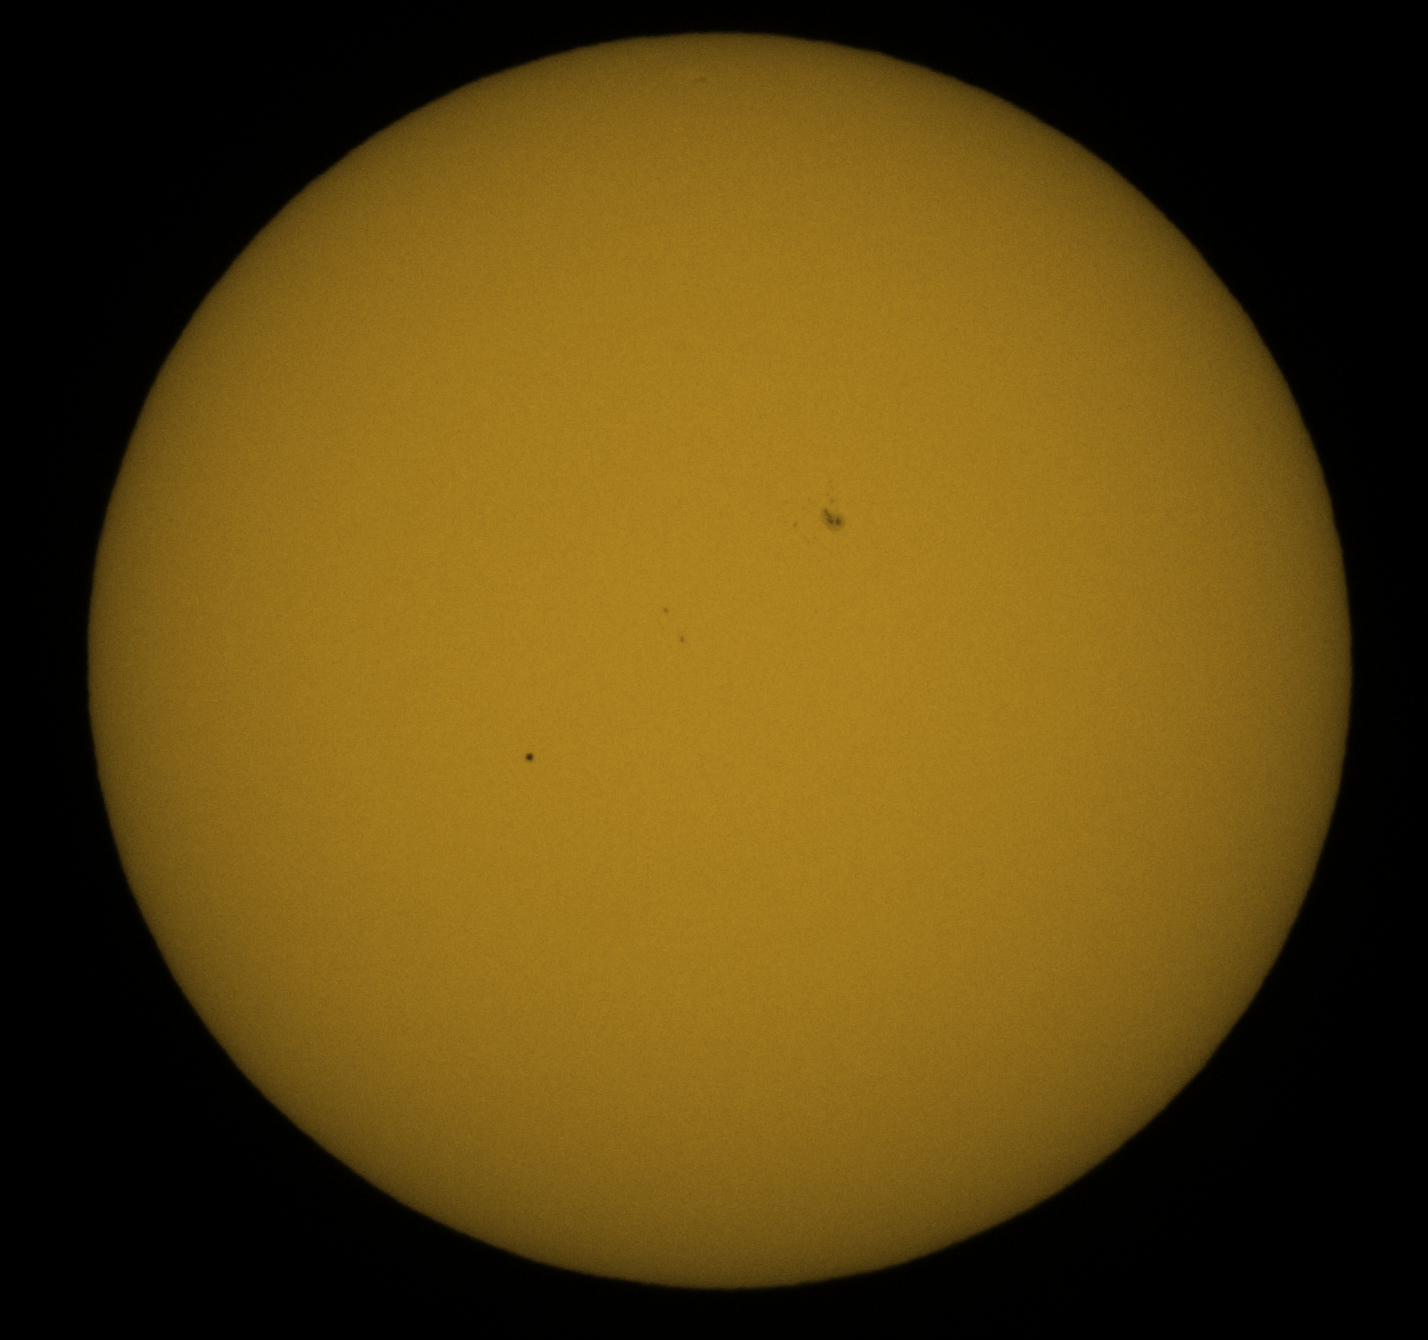 Transit of Mercury across the Sun